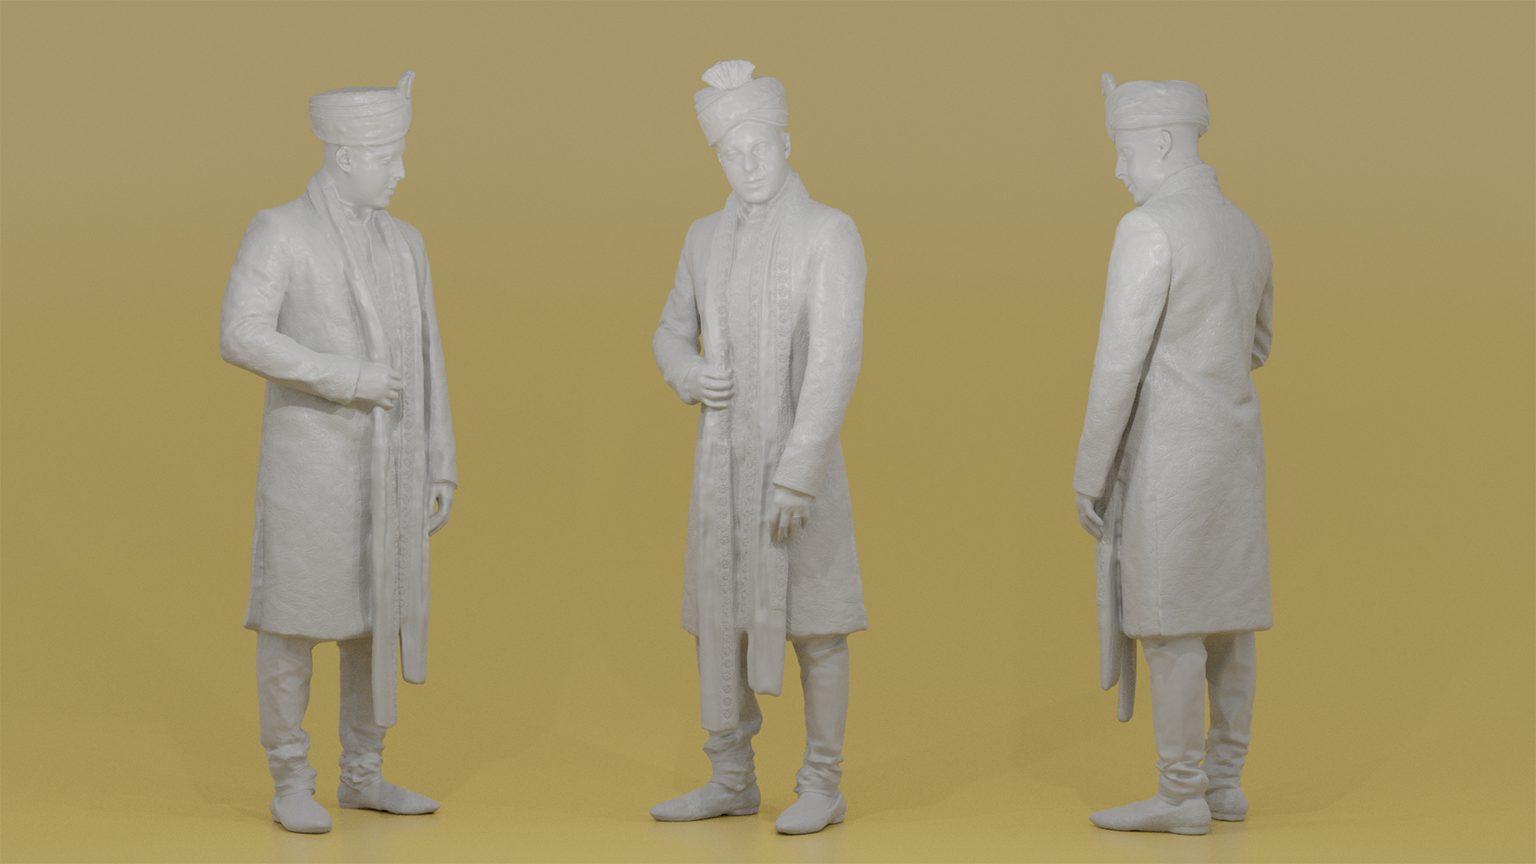 3d scanning and printing services